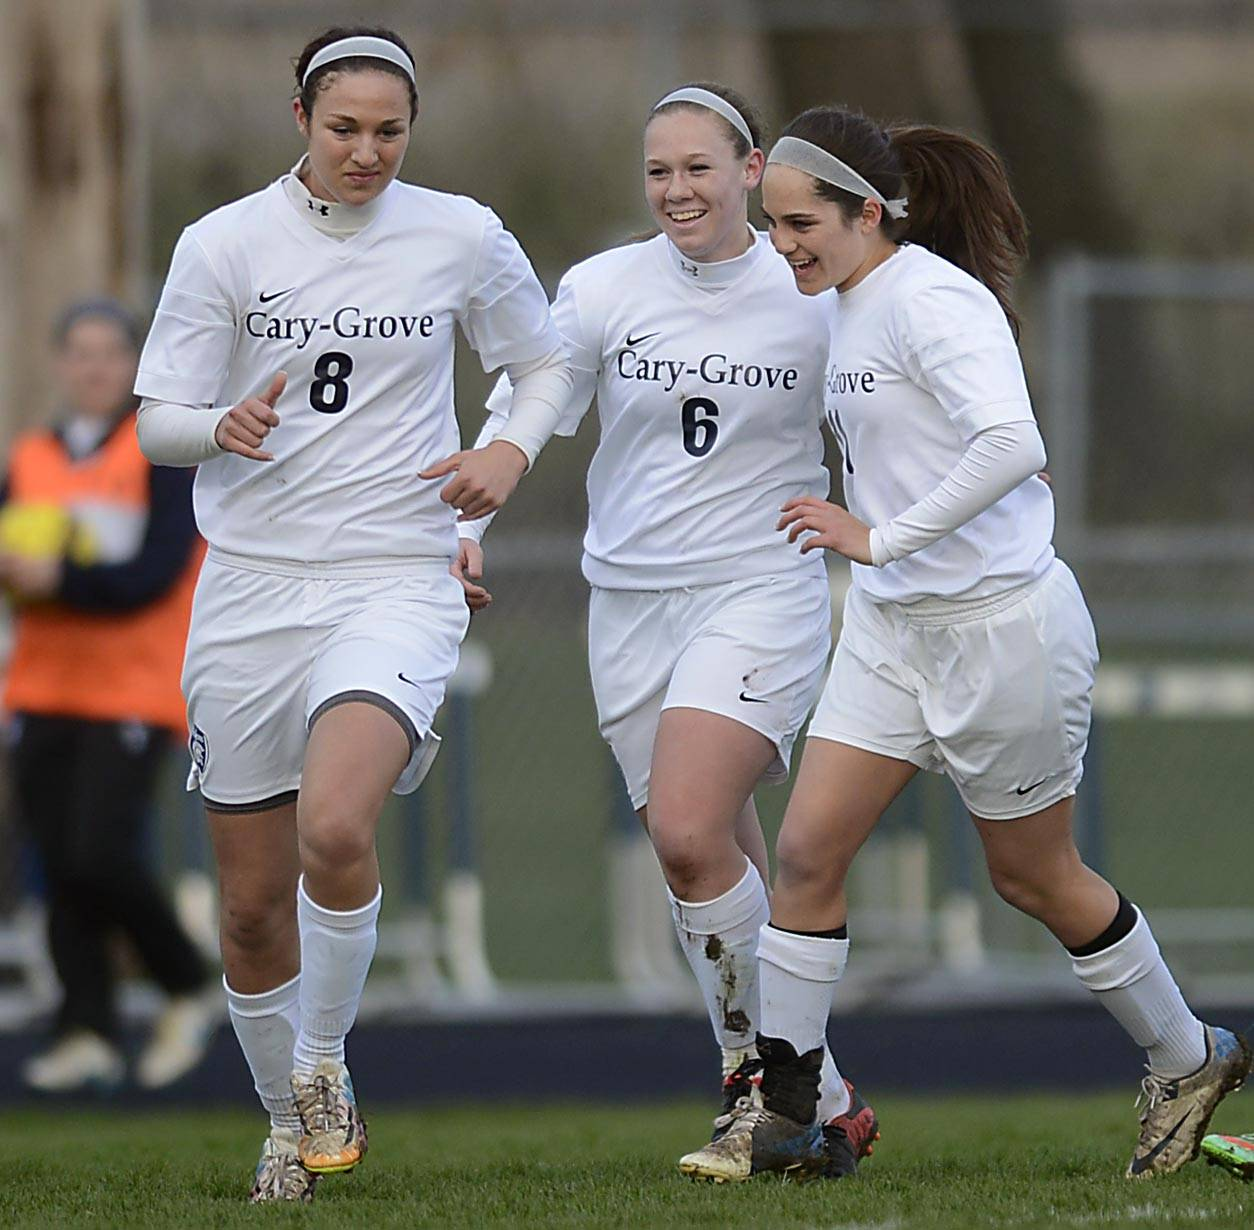 Cary-Grove's Katie Conner is flanked by teammates Abby Glaysher and JJ Baily, right, after her first-half goal against Huntley Thursday in Cary.